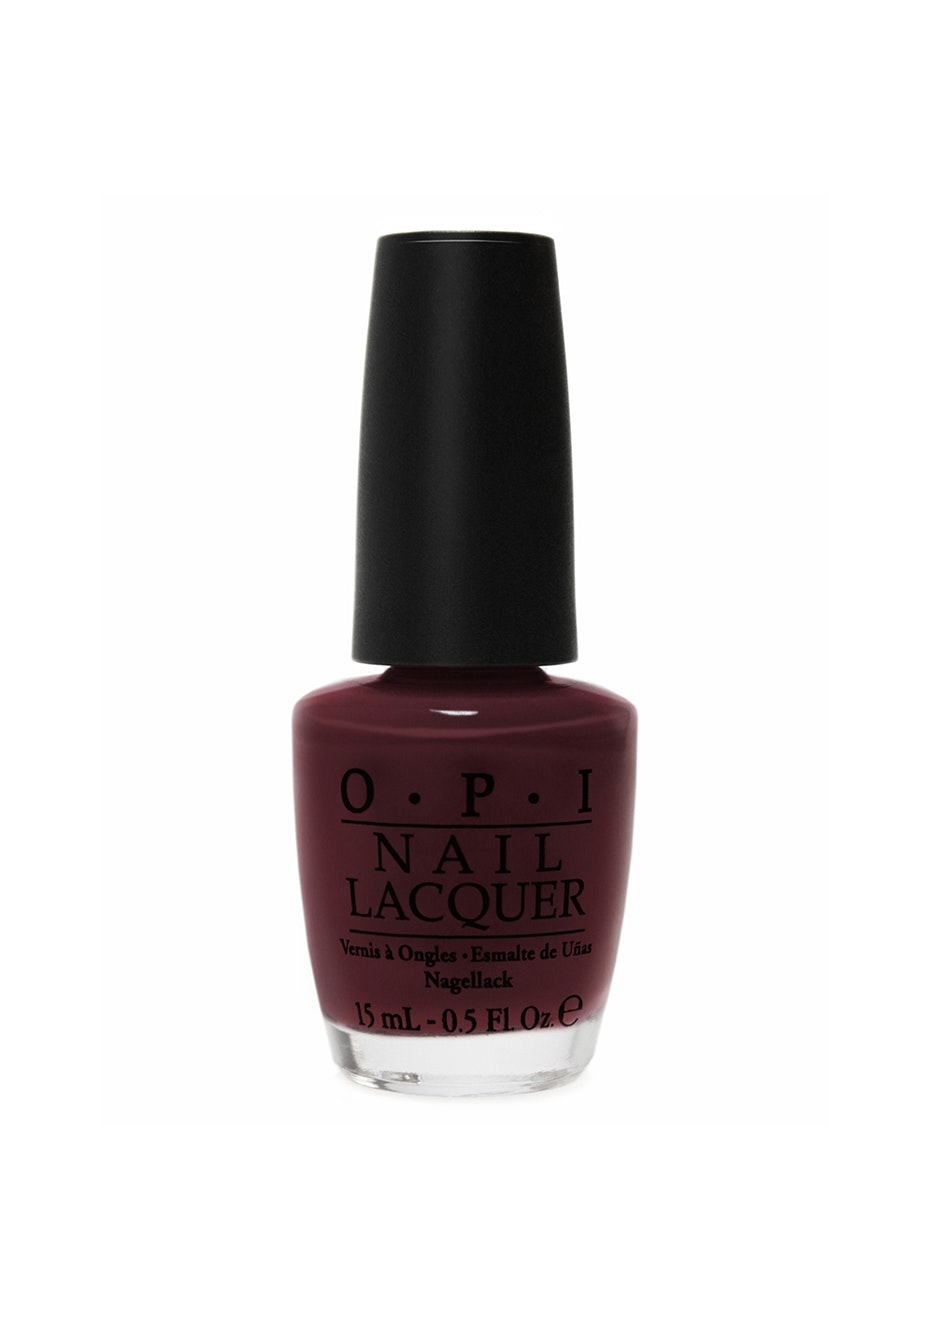 OPI-#Z15 William Tell Me About OPI